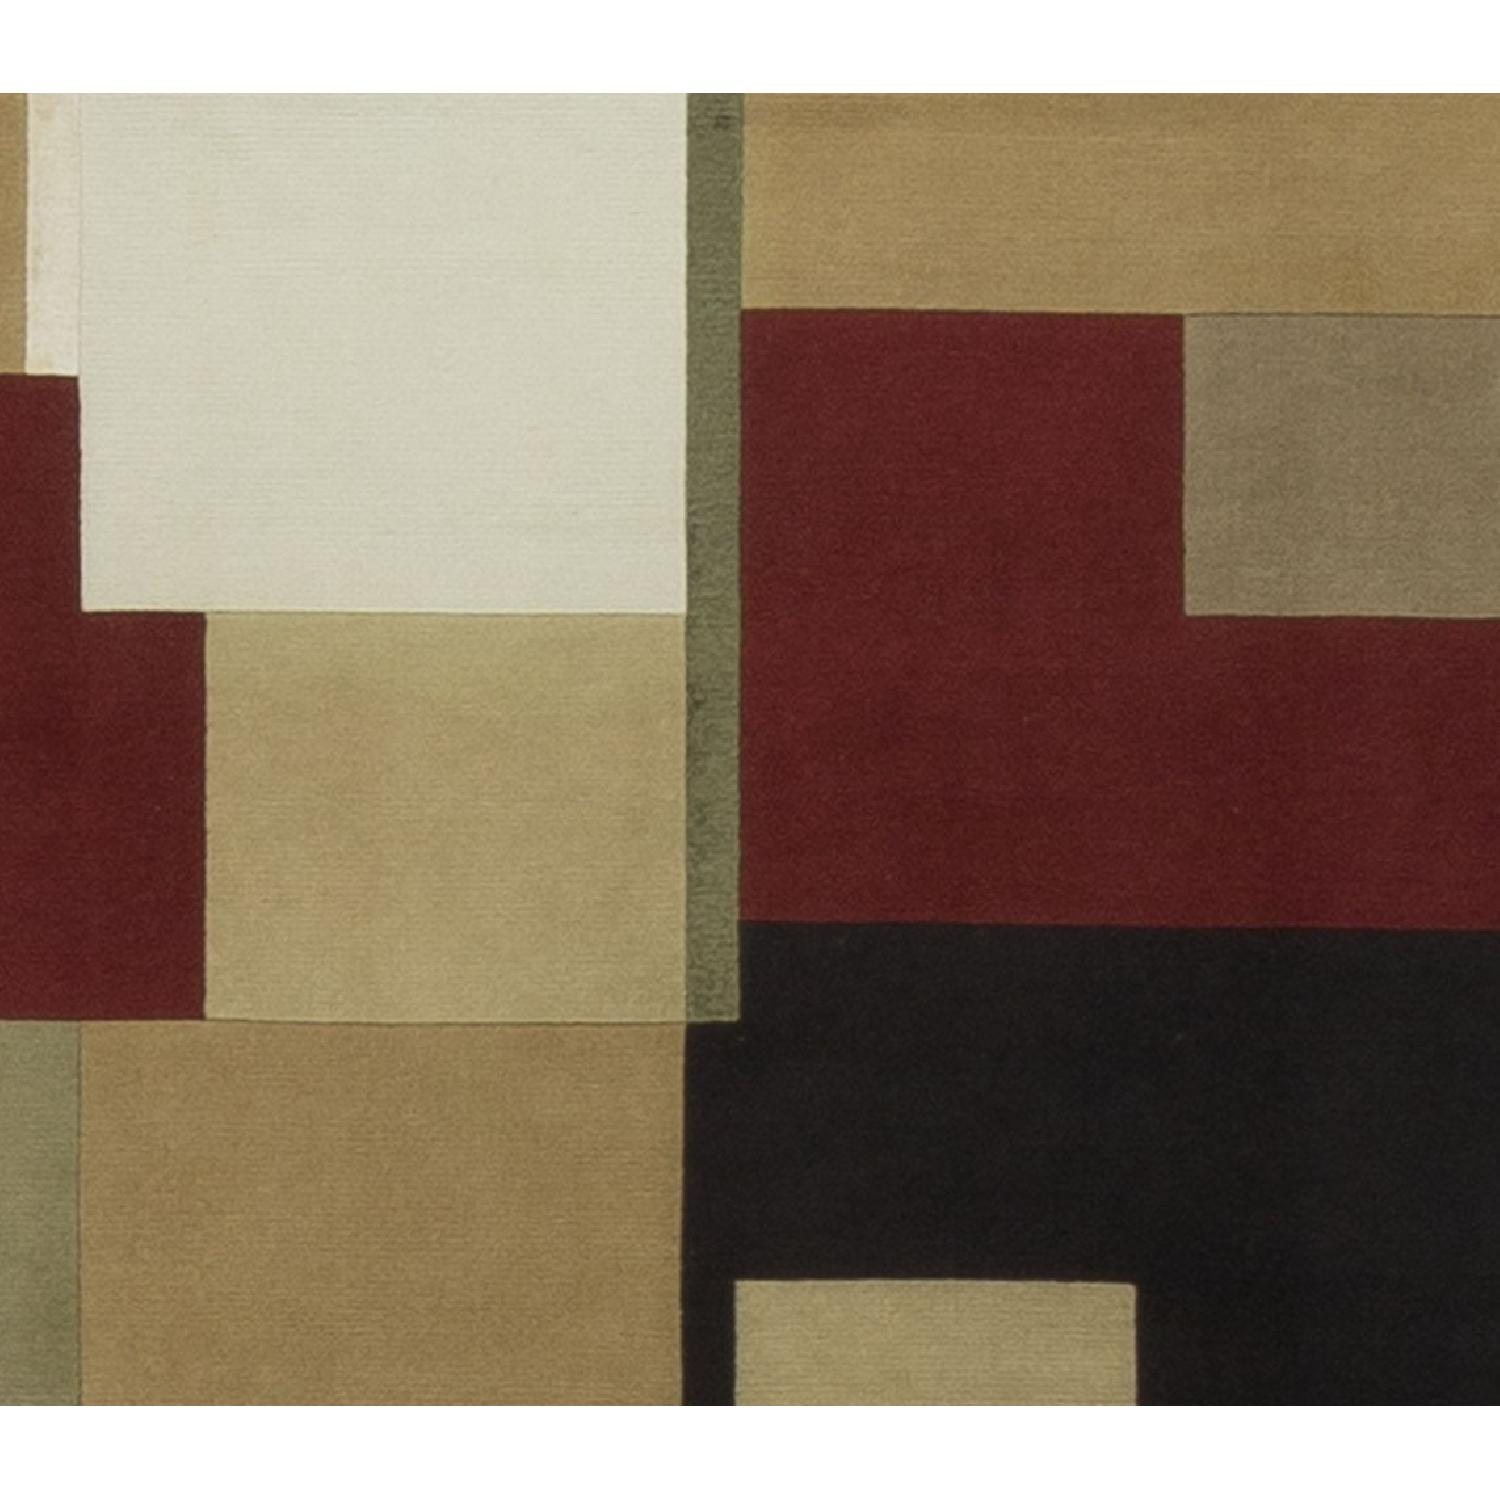 Modern Contemporary Hand Knotted Wool Rug in Red/White/Black/Beige - image-2